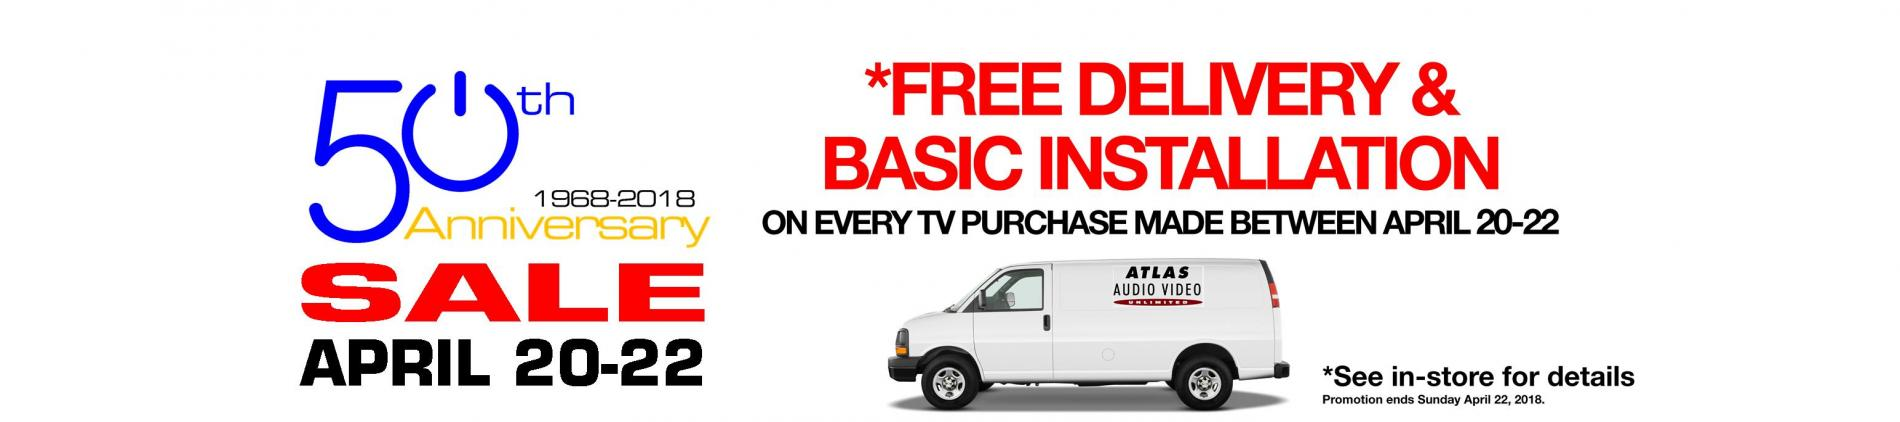 April 20-22 only - Free Delivery and Install on every TV purchase during our 50th Anniversary Event